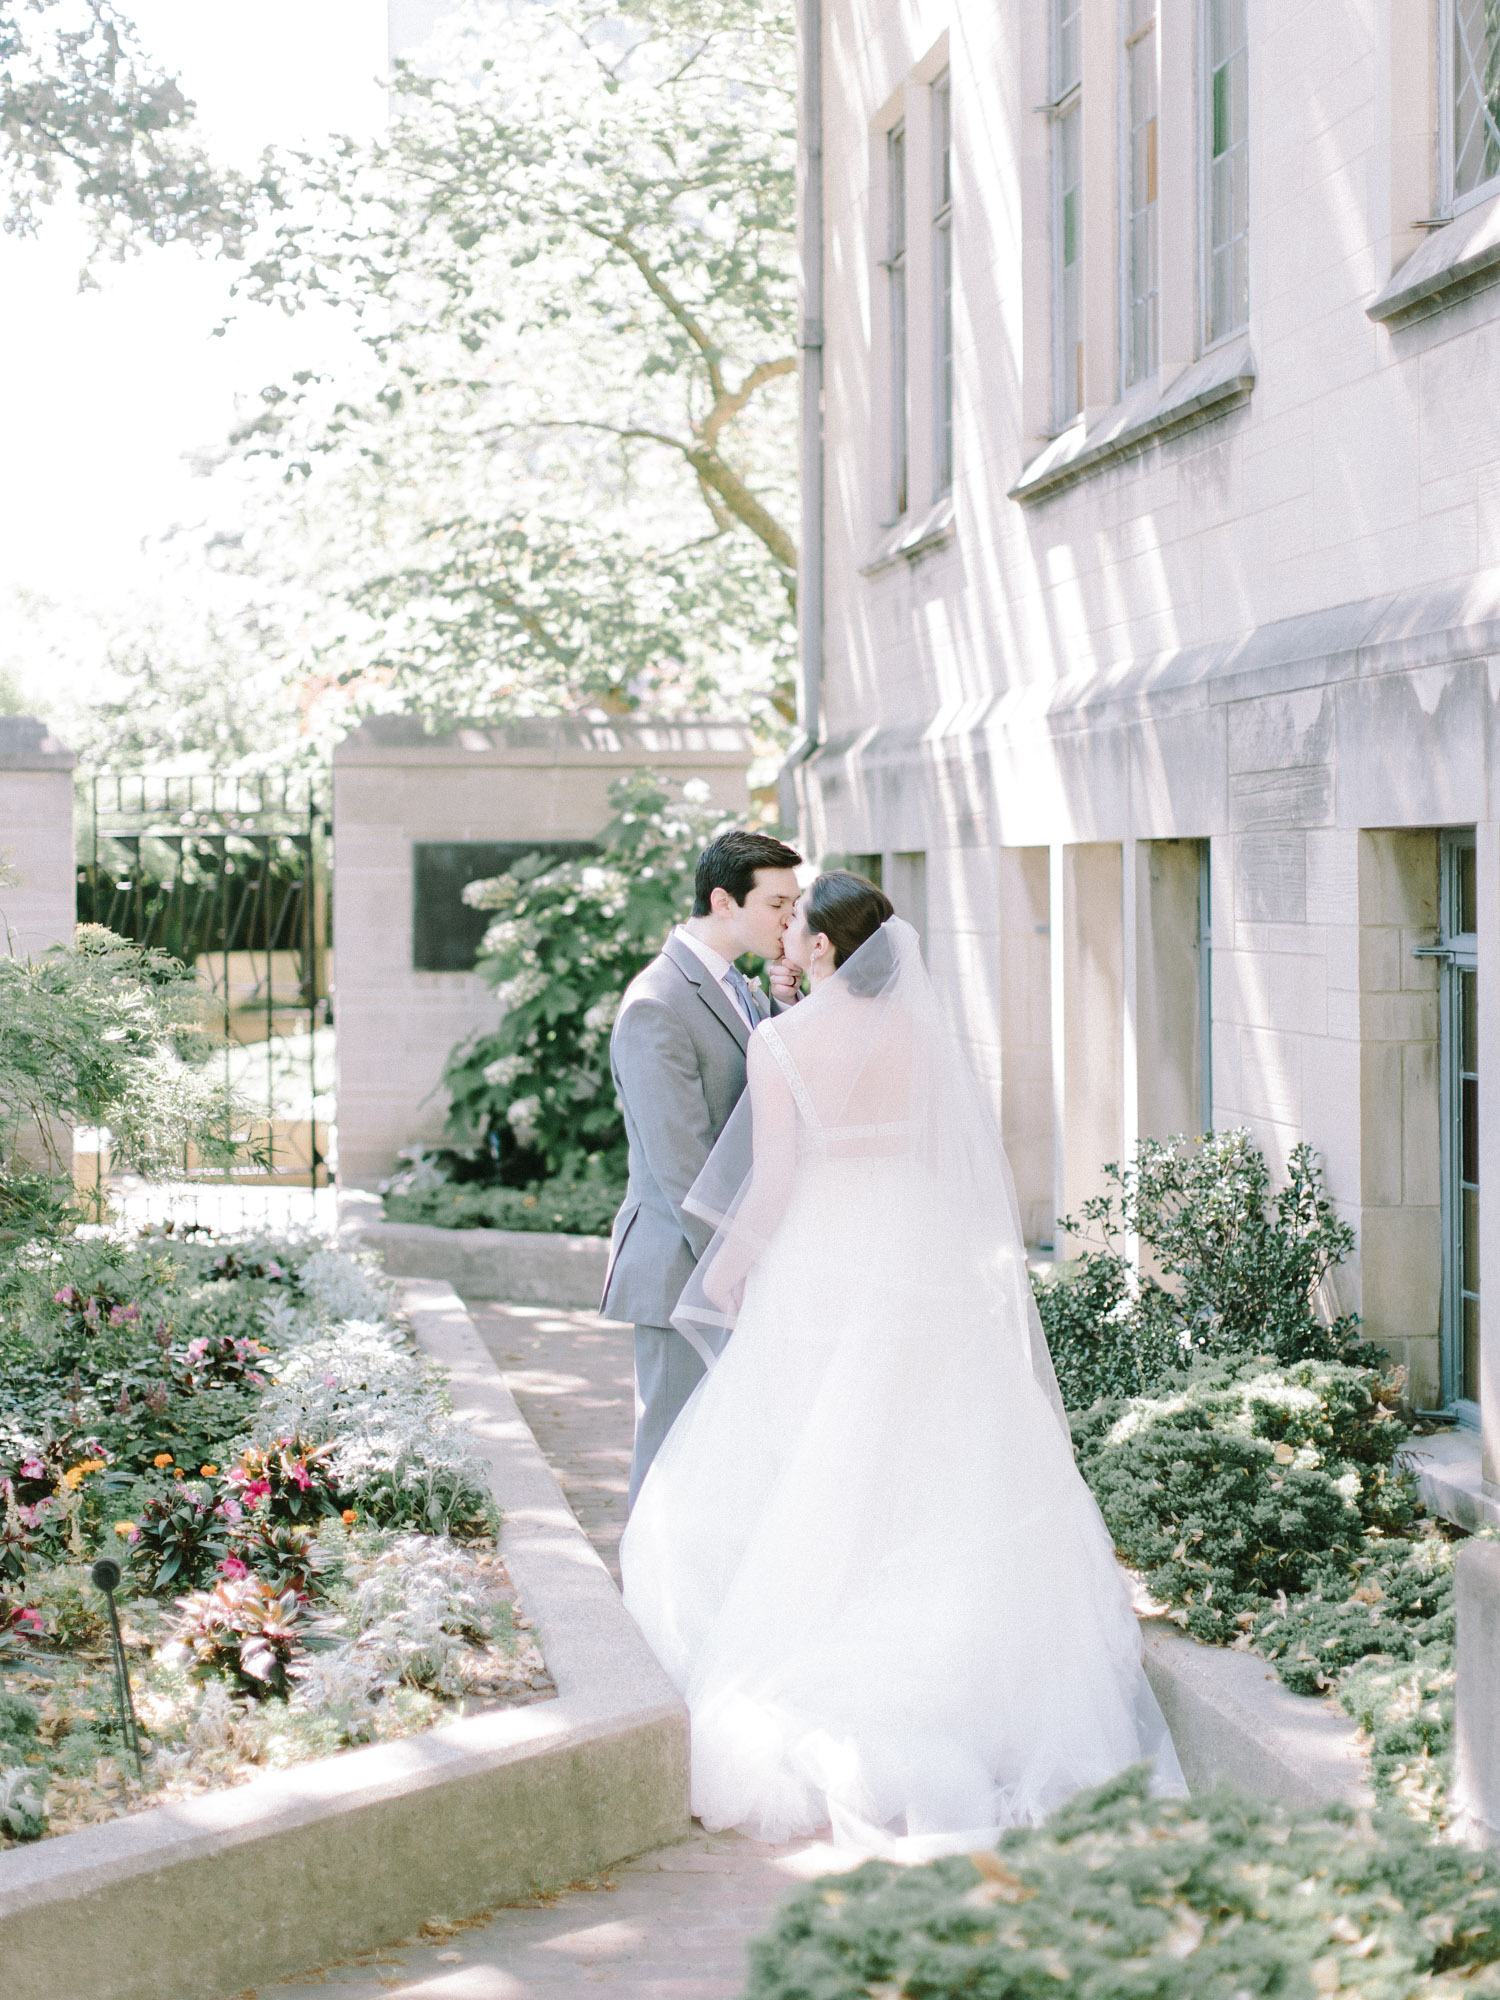 A groom gently pulls his bride in for a kiss in the gardens outside an Ann Arbor, Michigan church